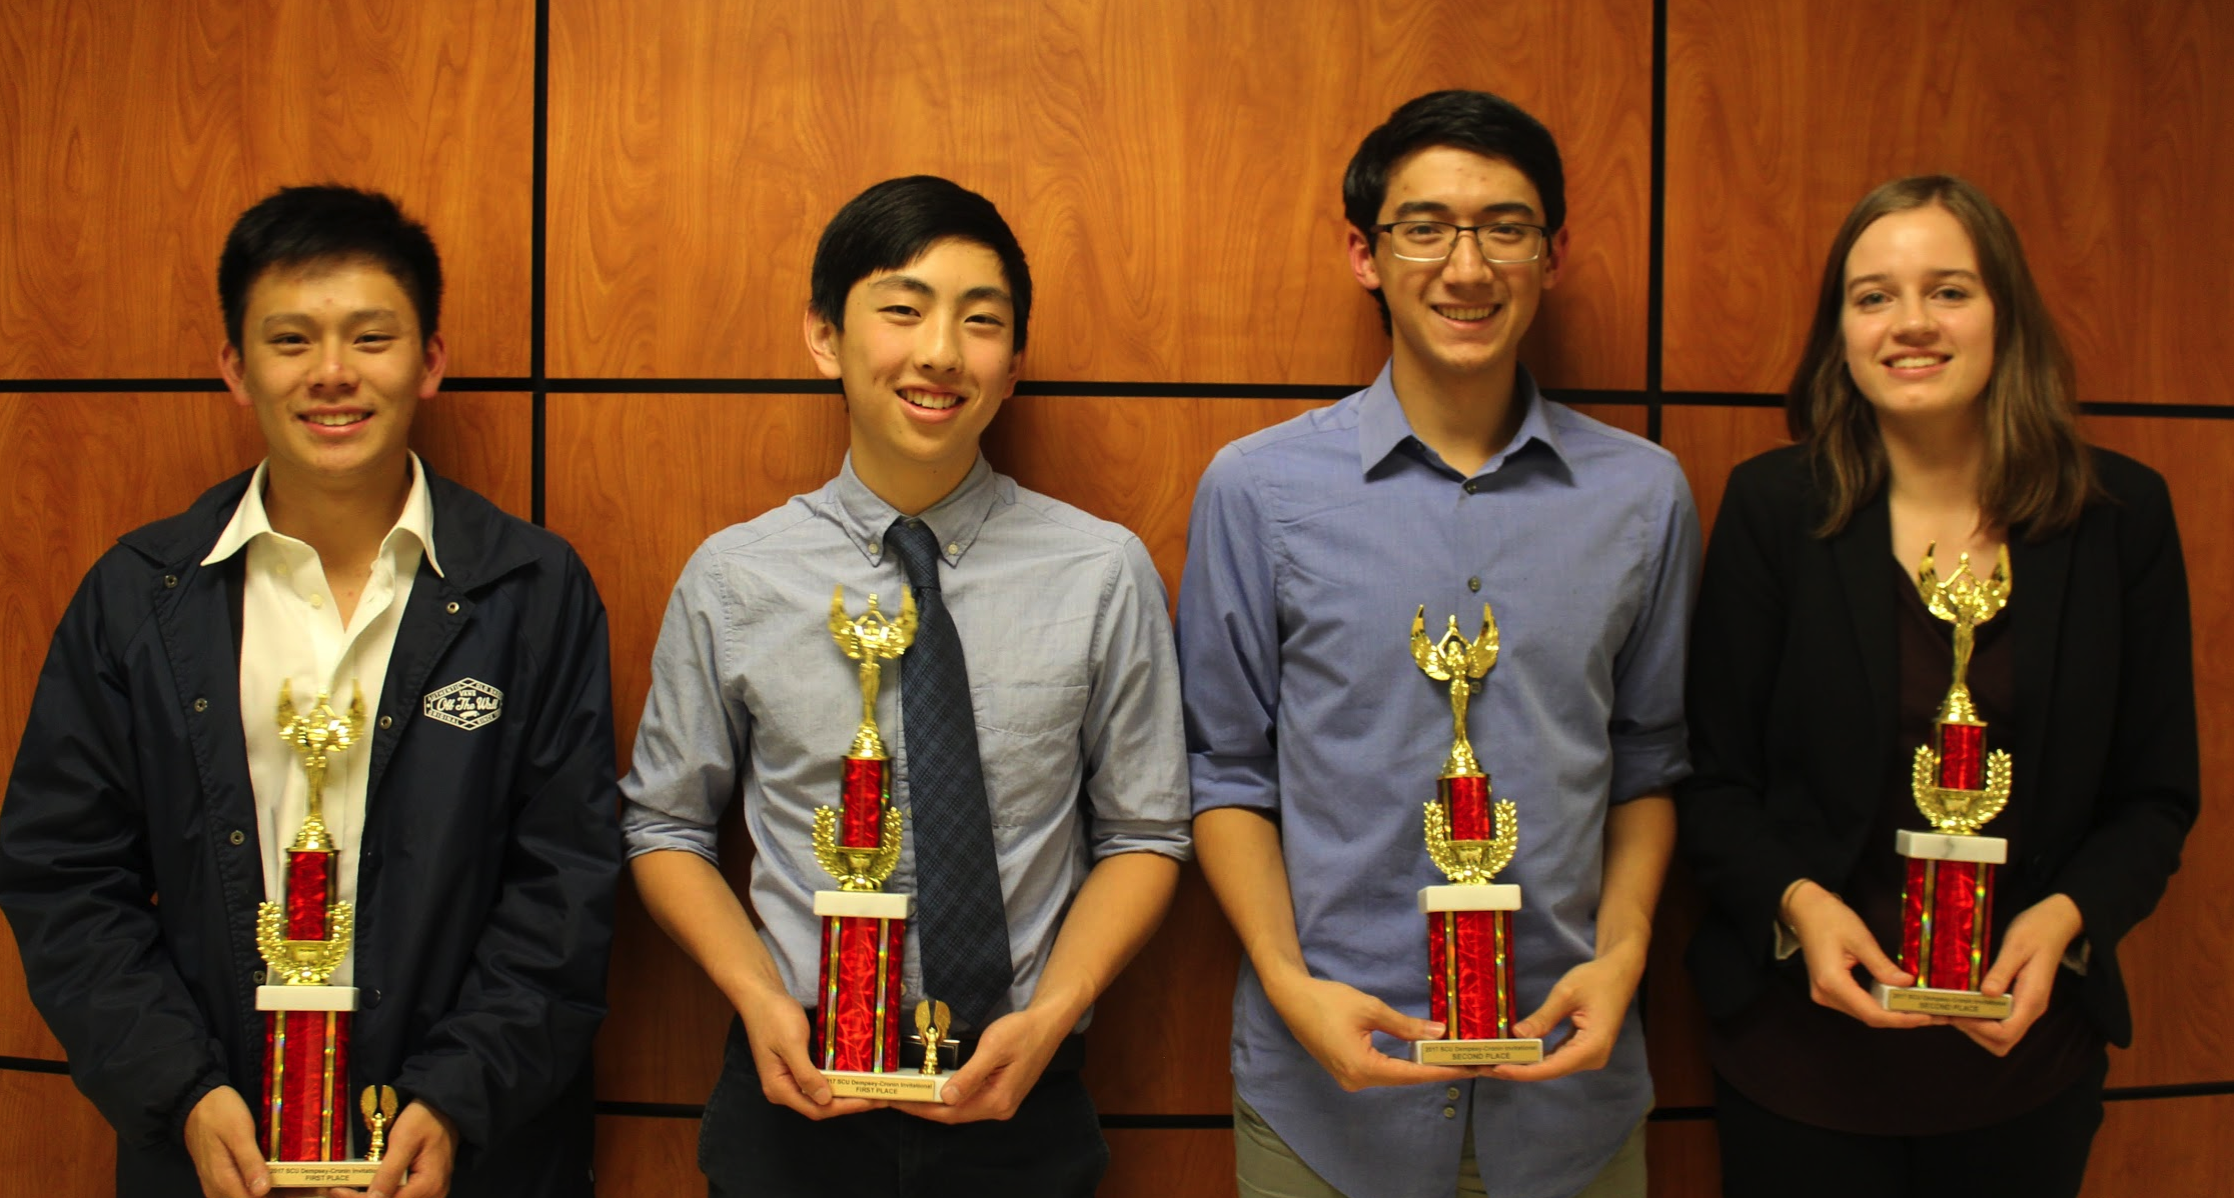 (left to right) Zeng, Wong, Gomez Siu, Stankus pose after finals round